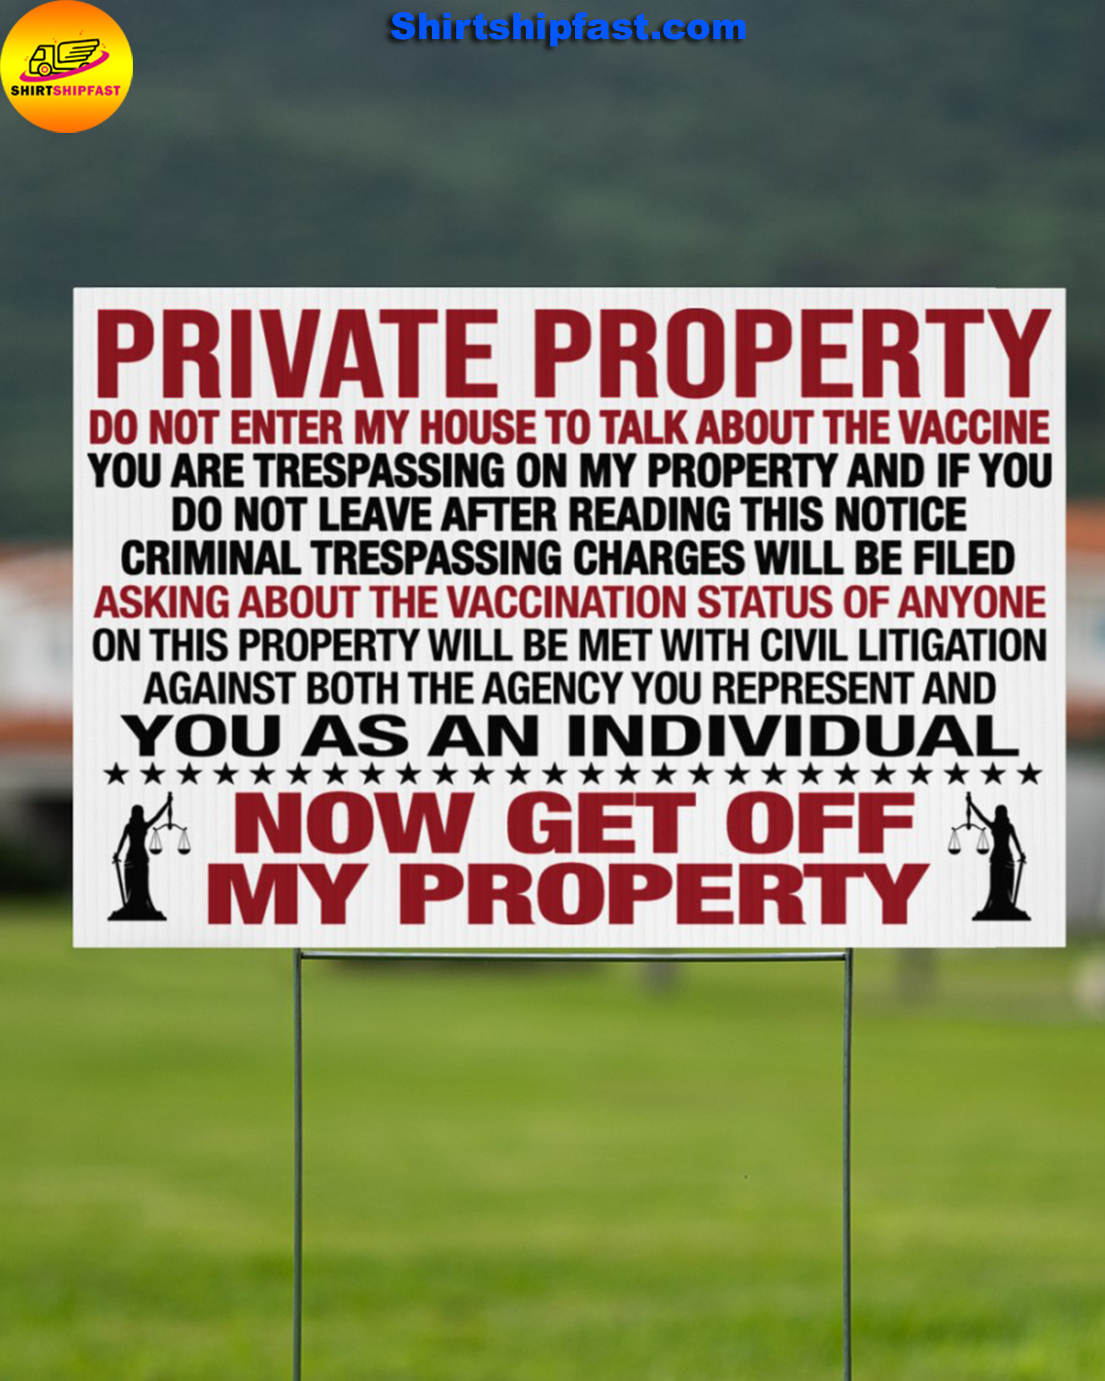 Private property do not enter my house to talk about the vaccine yard signs - Picture 1